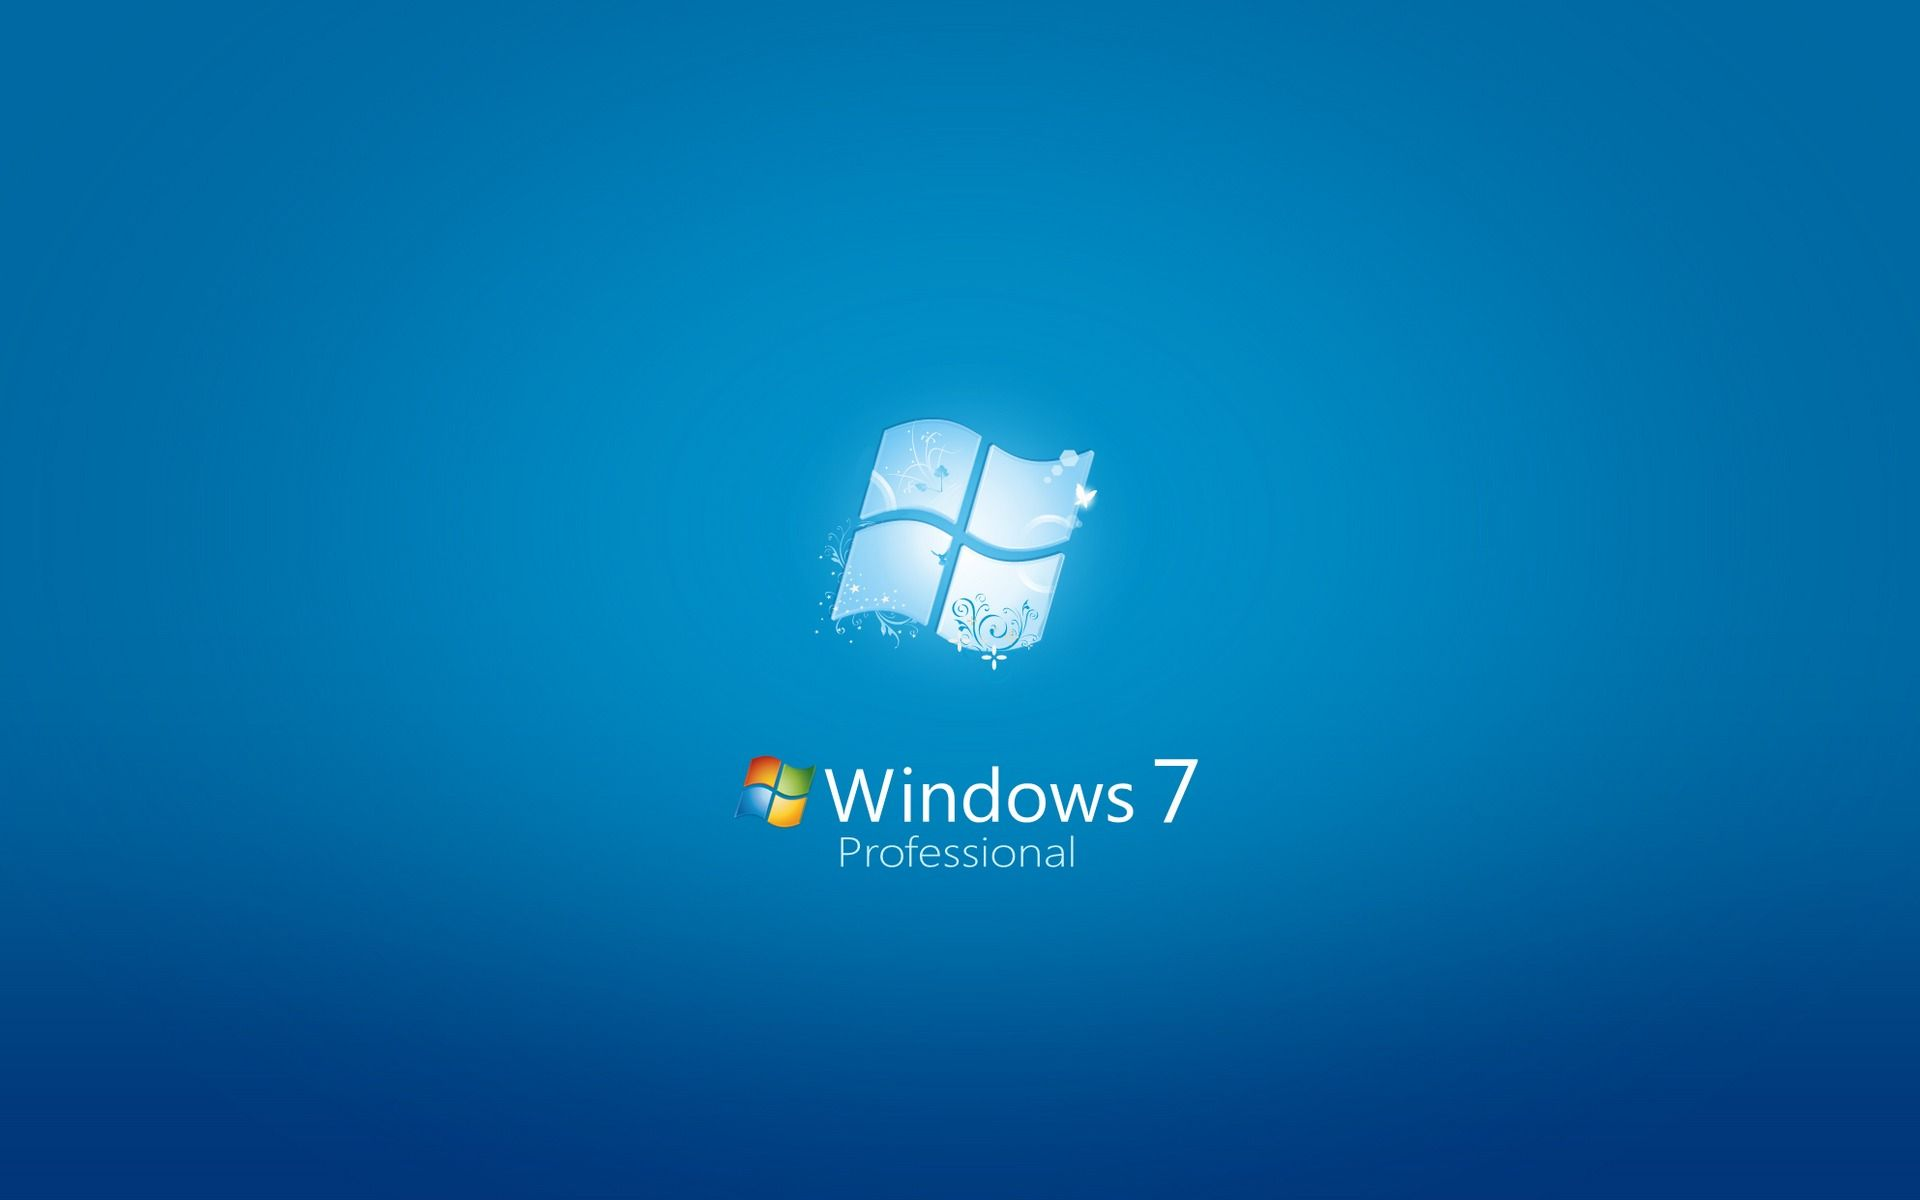 Windows 7 Professional Hd Wallpapers Windows Wallpaper Desktop Wallpaper Free Desktop Wallpaper